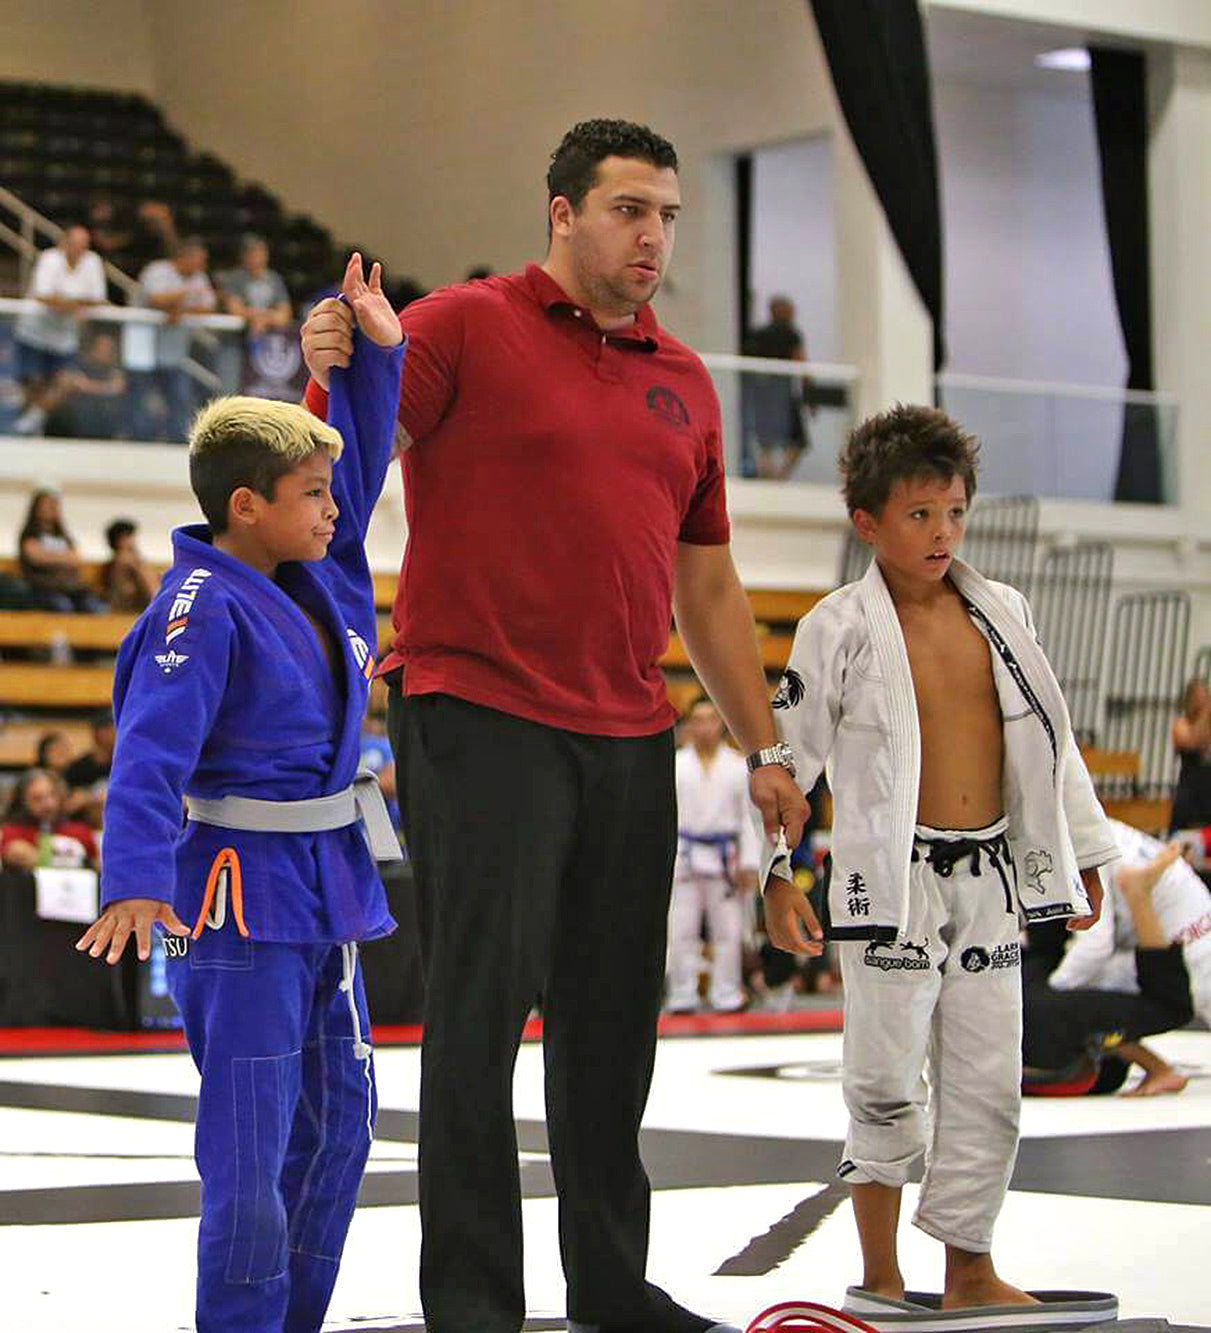 Elite Sports Team Elite Bjj Fighter Gabriel Garcia (Martelo)  Image14